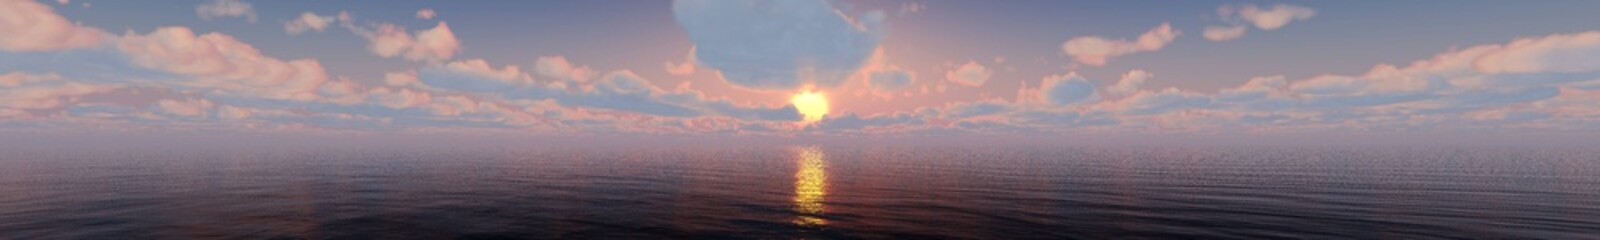 sea sunset. panorama of the sea landscape during sunset with clouds in the sky.